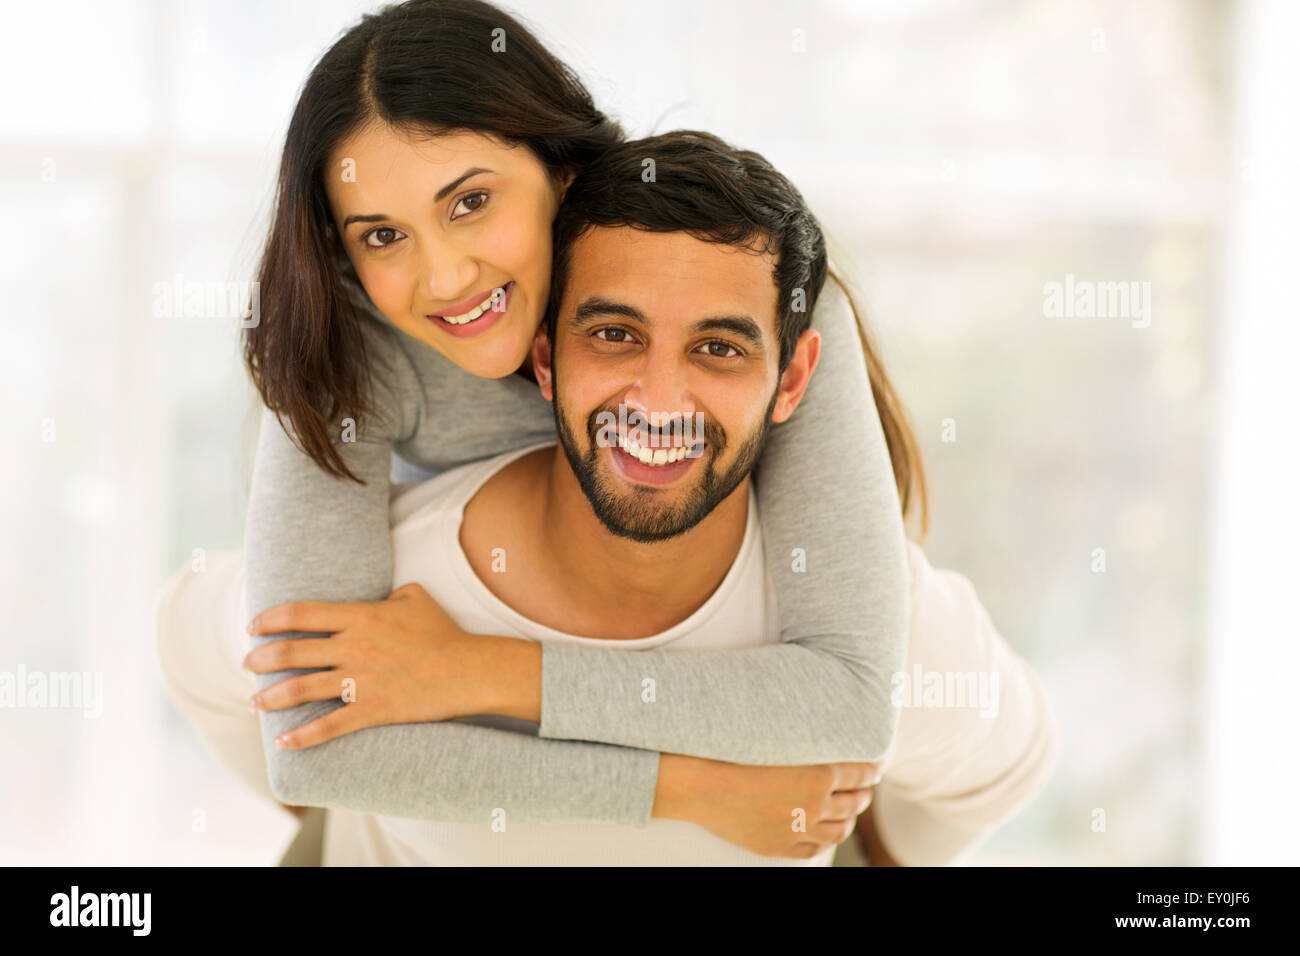 happy young Indian couple having fun with piggyback indoors - Stock Image